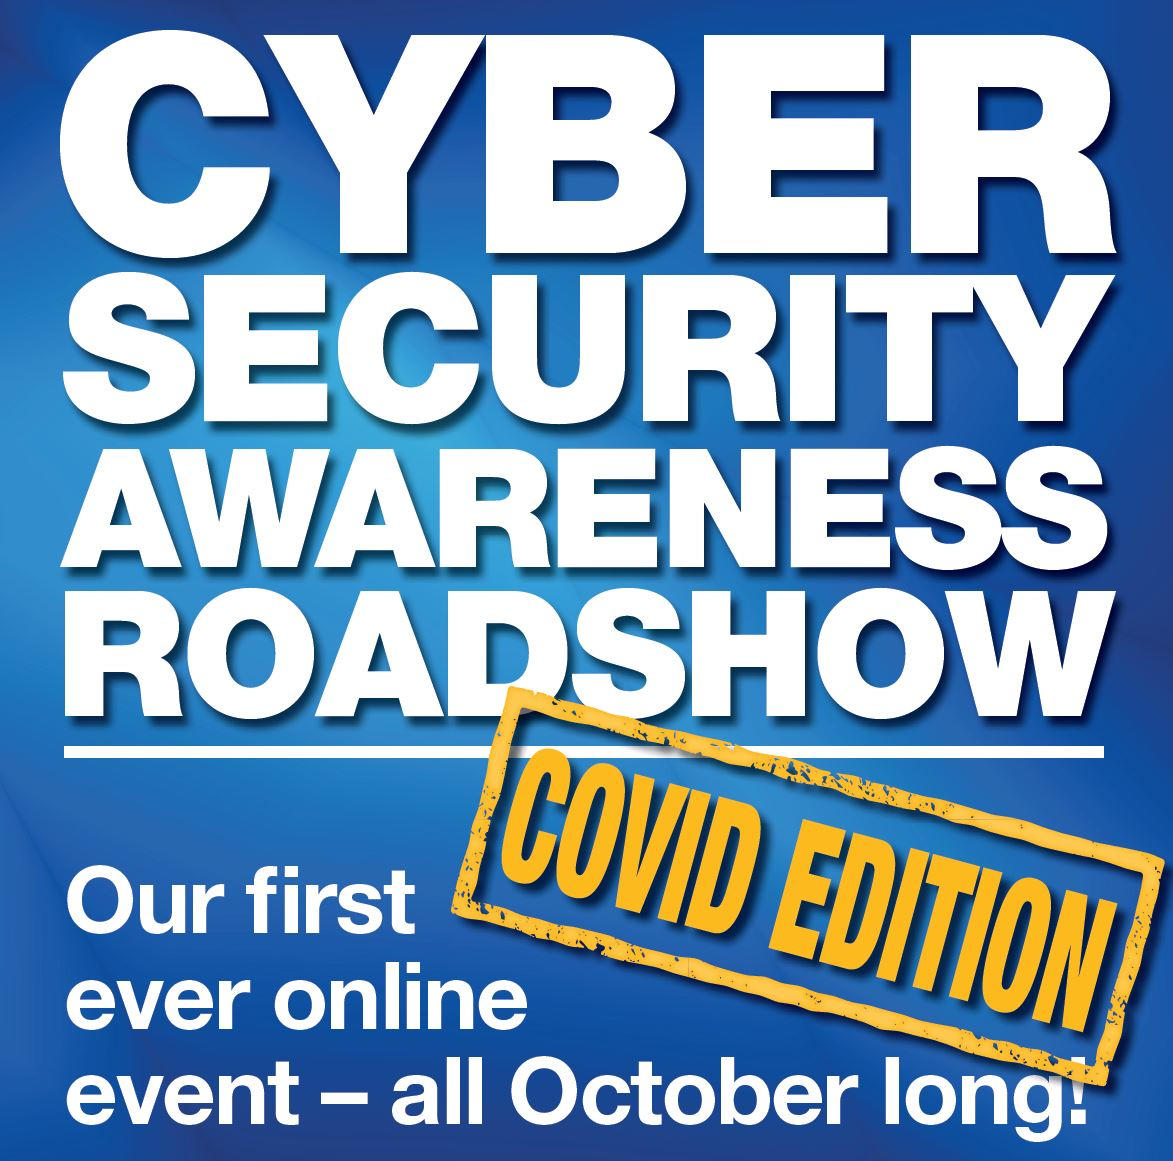 Cyber Security Awareness Roadshow - COVID Edition